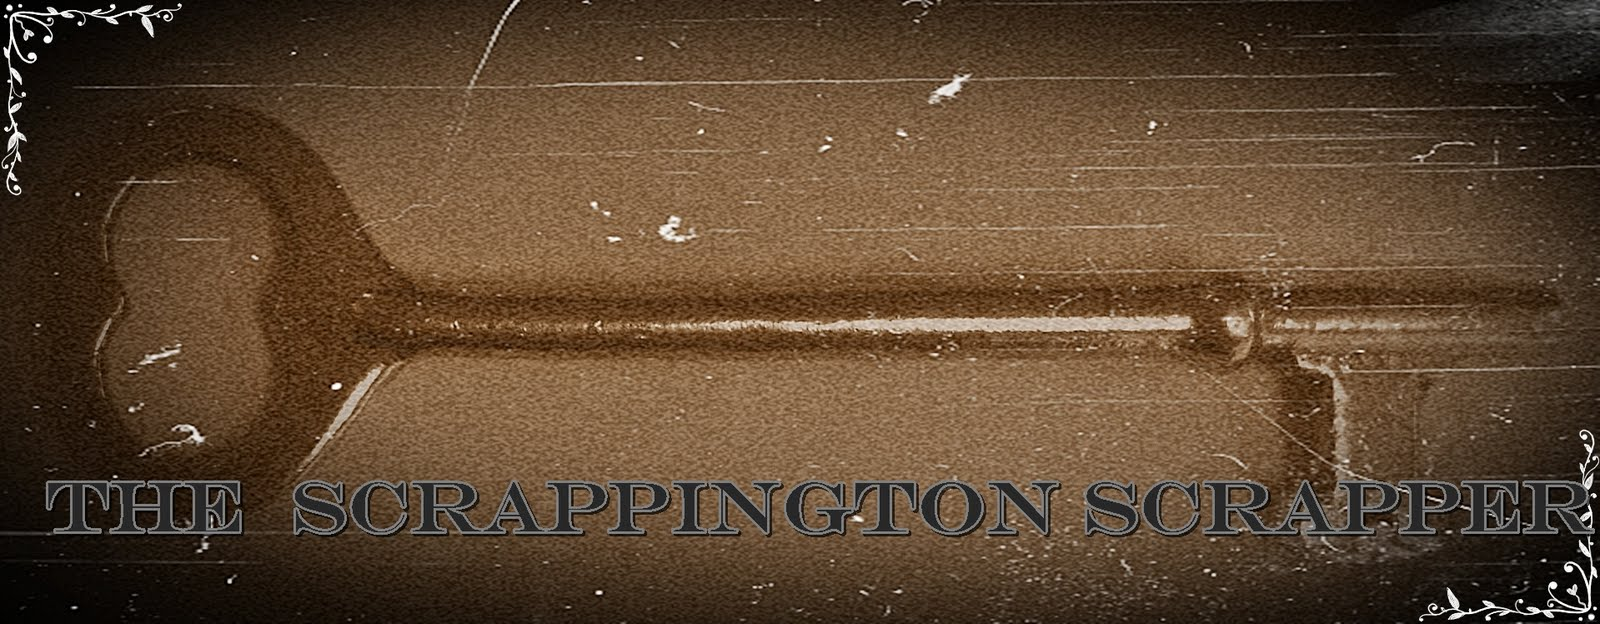 Scrappington Scrapper